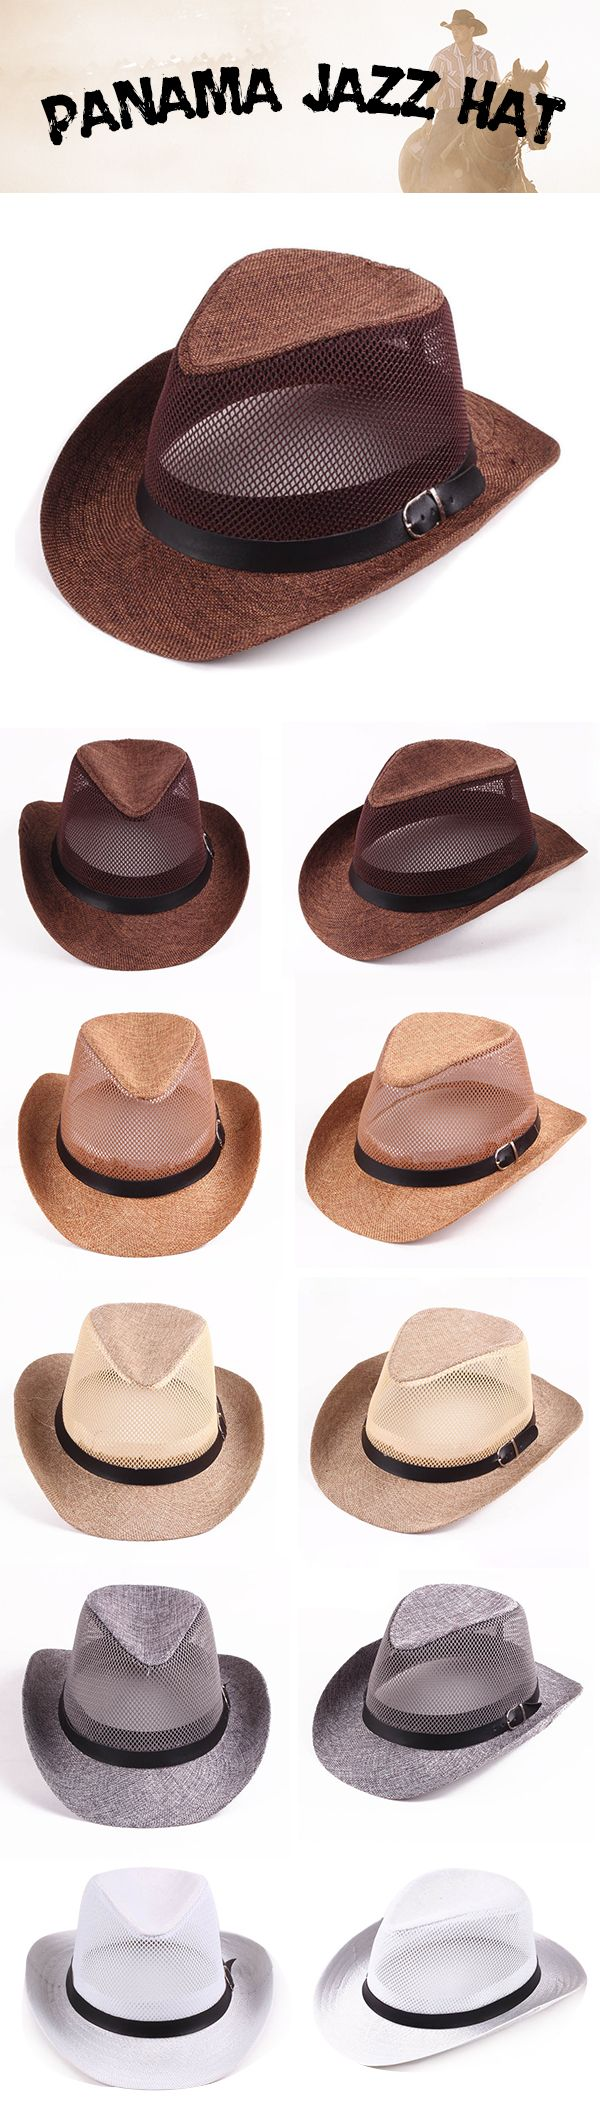 Men Hollow Out Mesh Top Hat Wide Brim Casual Braid Fedora Beach Sun Flax Panama Jazz Hat